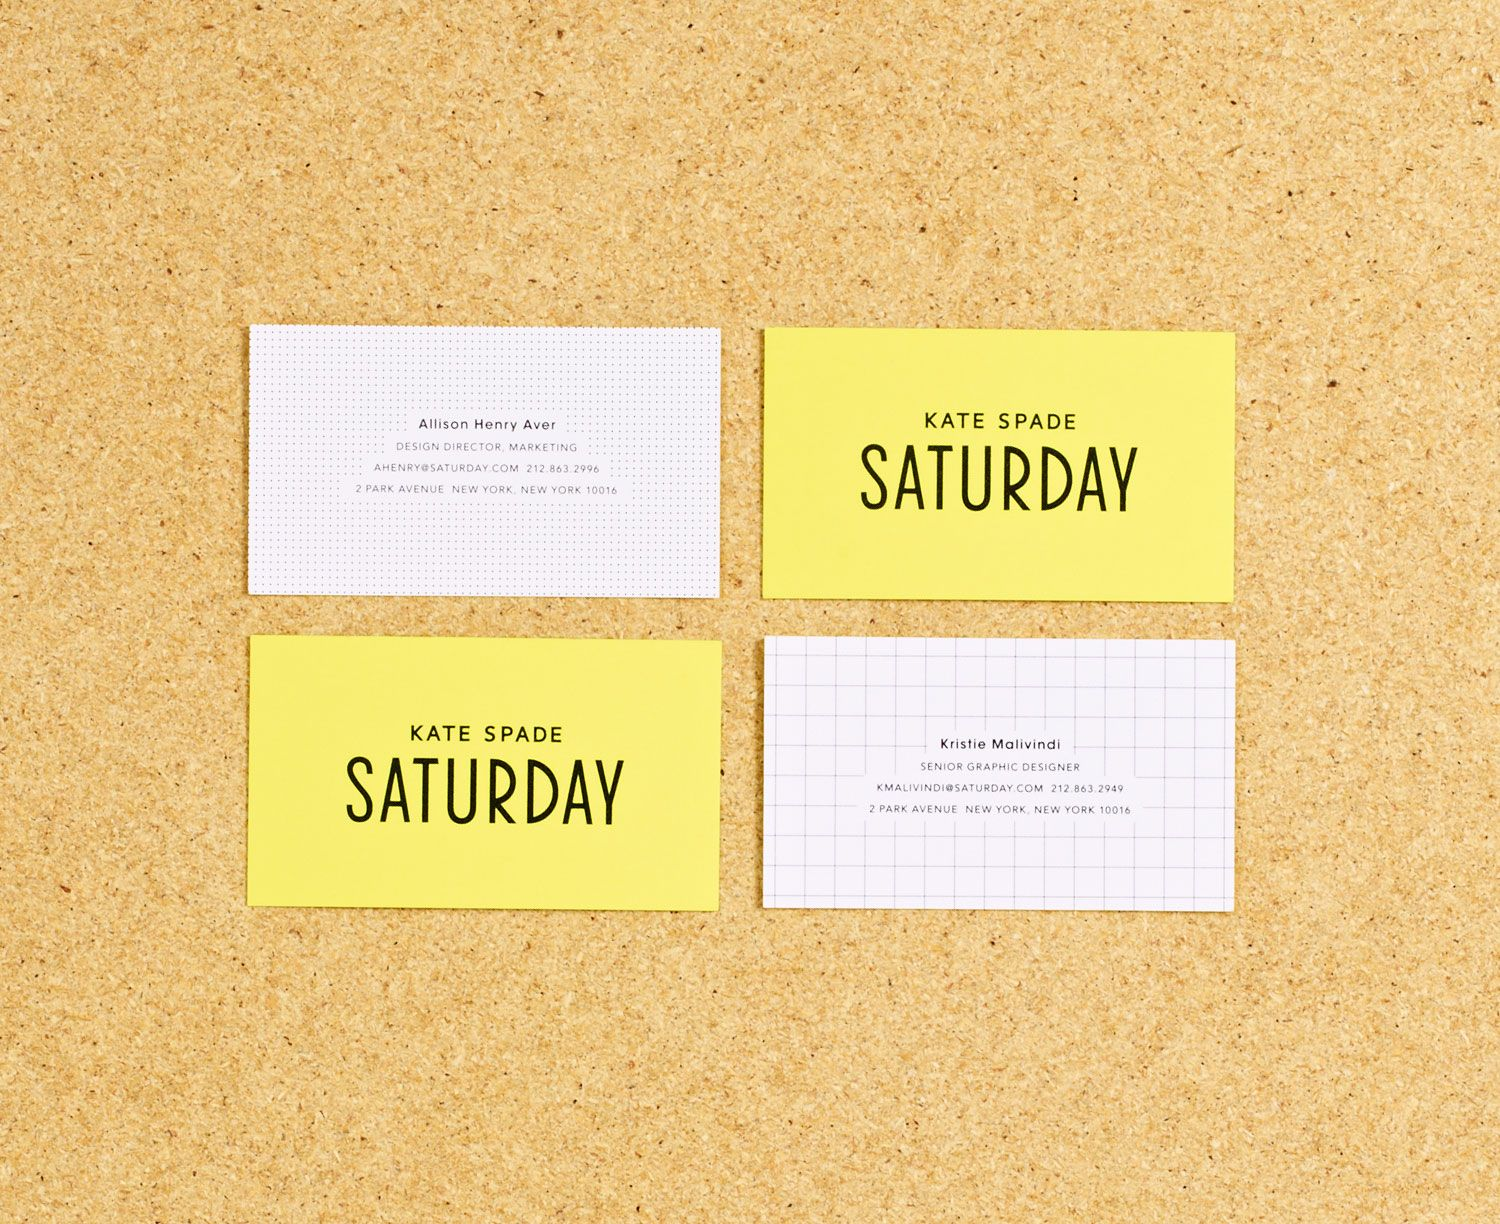 Kate spade saturday business cards sign u graphic pinterest